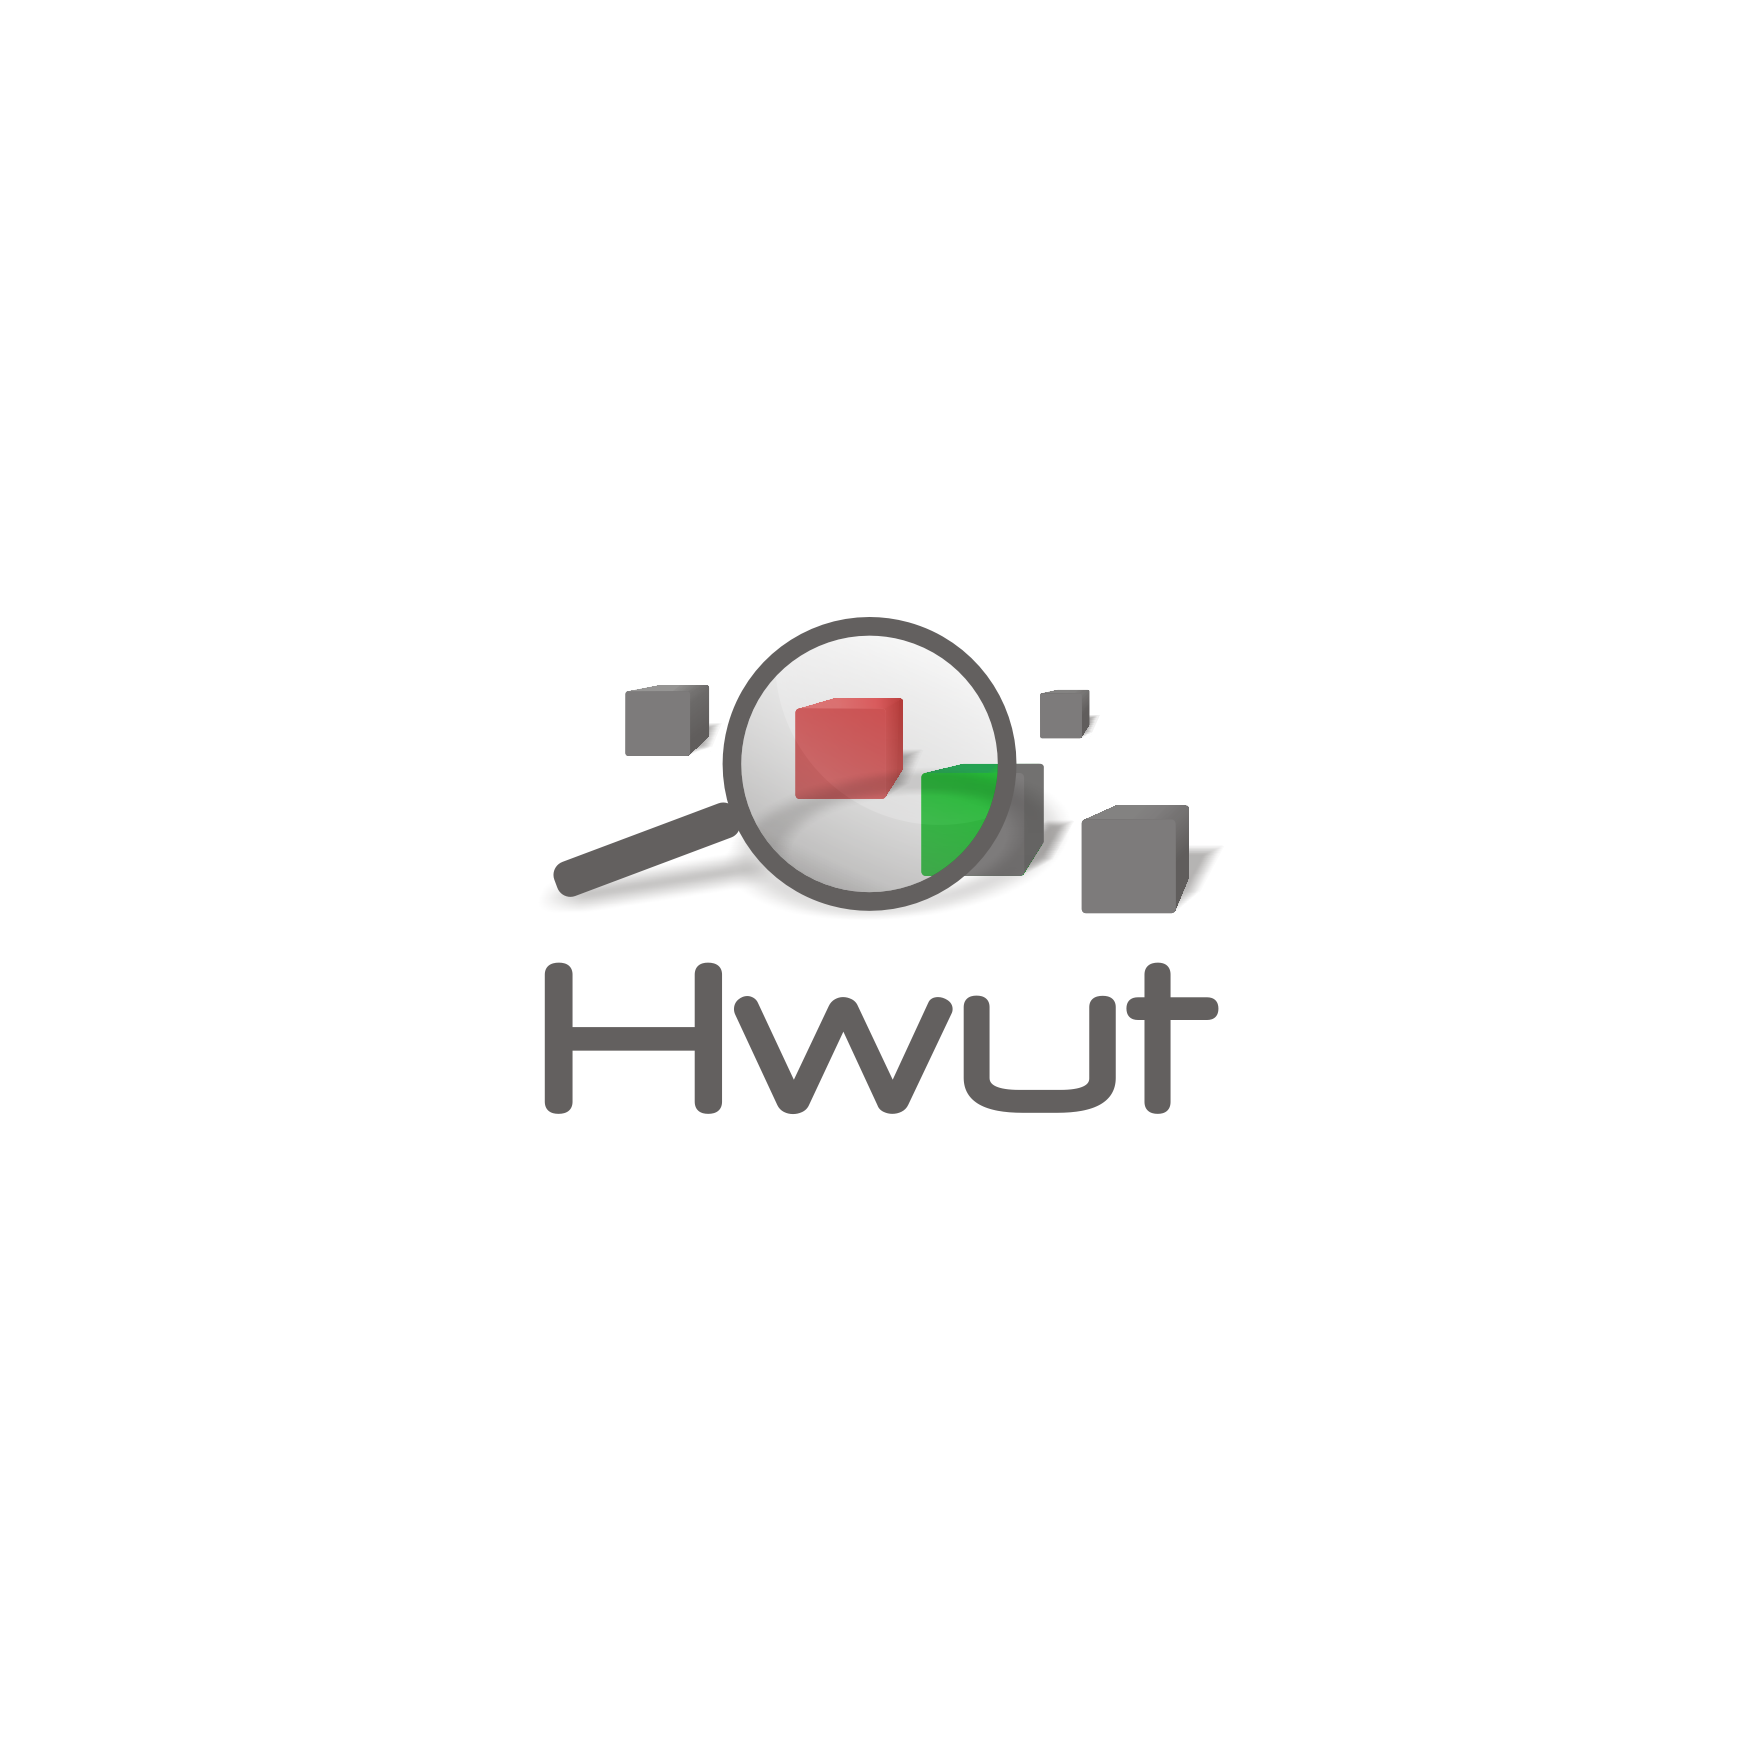 OpenSource: HWUT -- Logo for a cool software unit test tool.